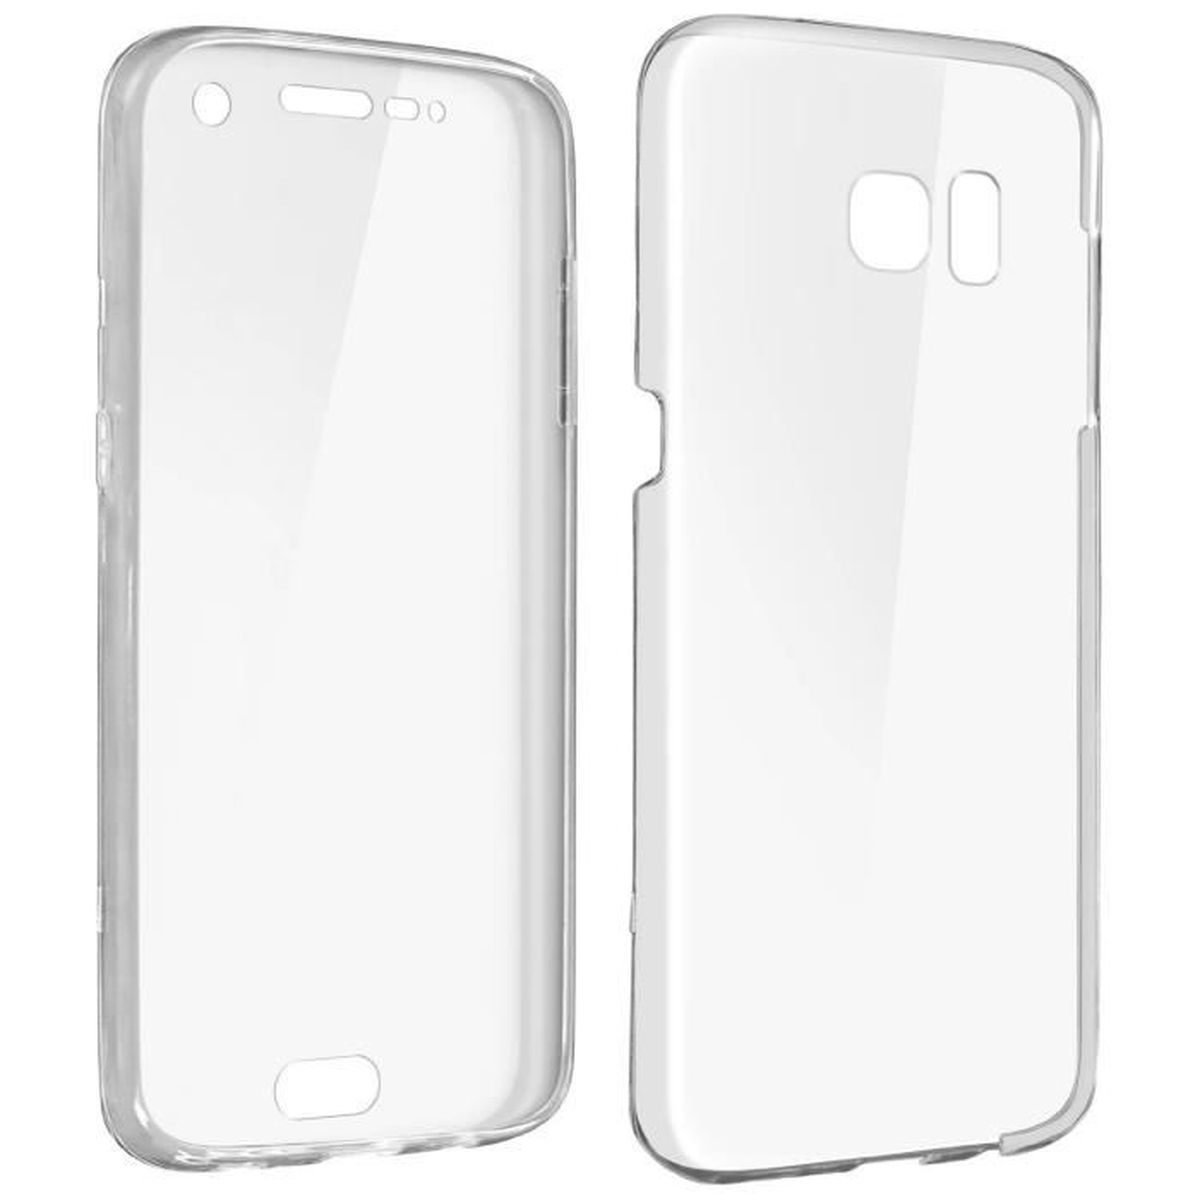 coque samsung galaxy note 4 transparente 11763b65cab5